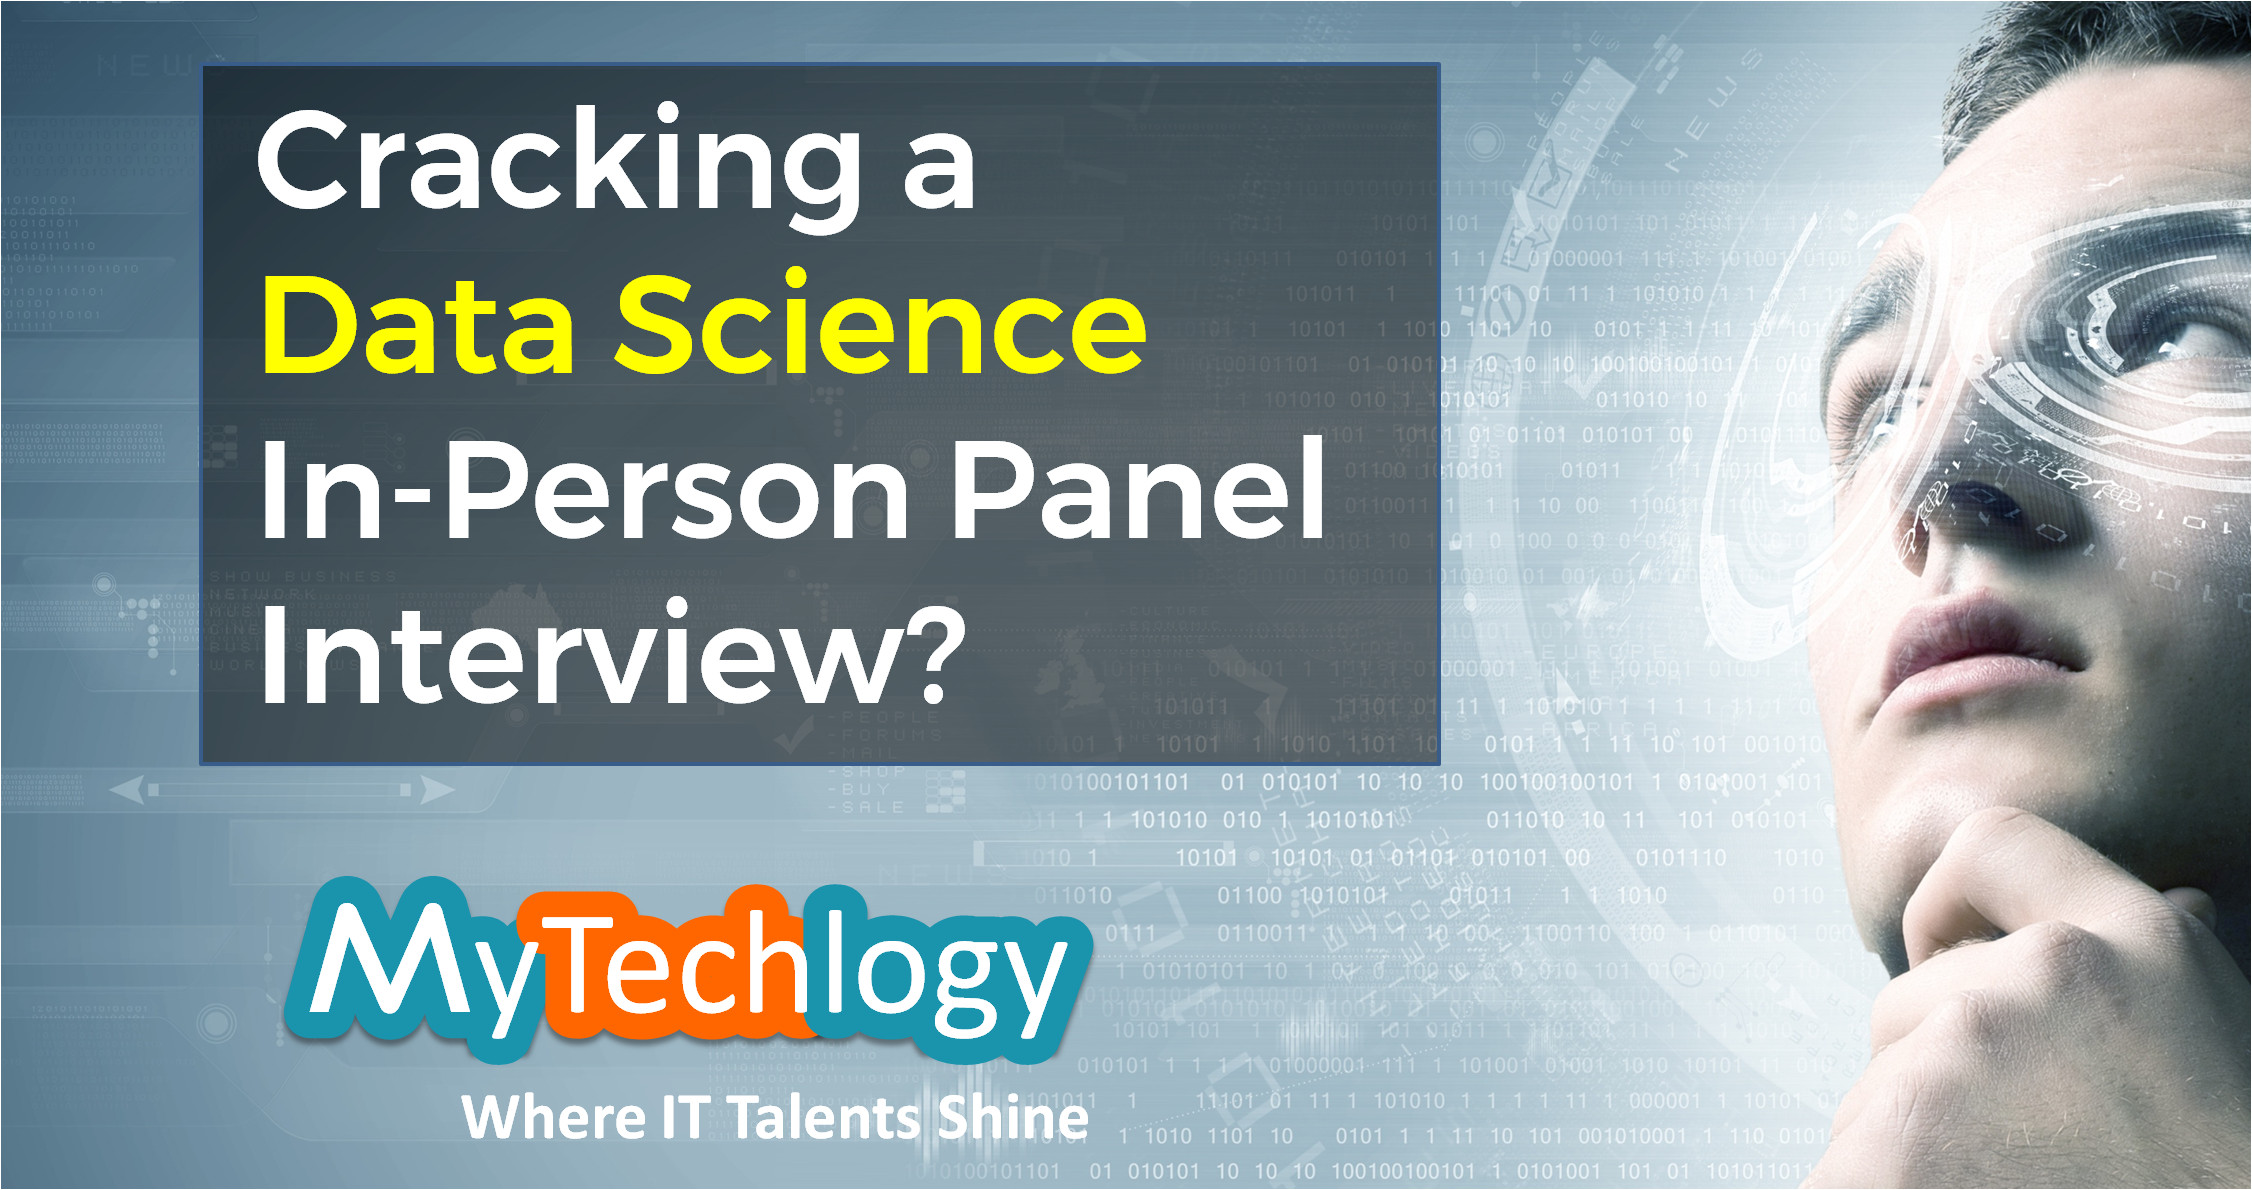 Cracking a Data Science In-Person Panel Interview? - Image 1